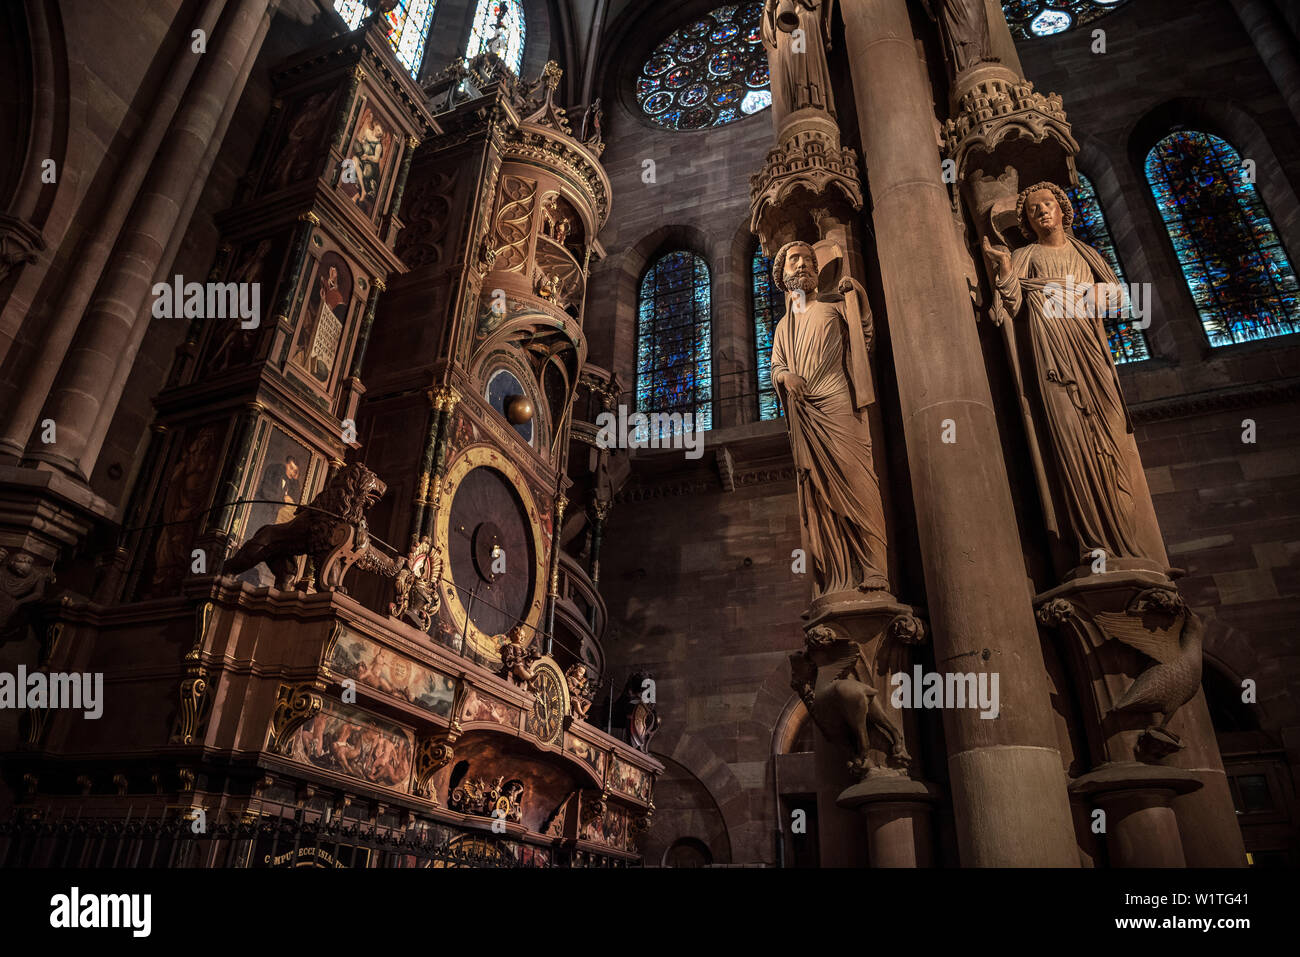 astronomical clock, interior of Strasbourg cathedral, Strasbourg, Alsace, France Stock Photo